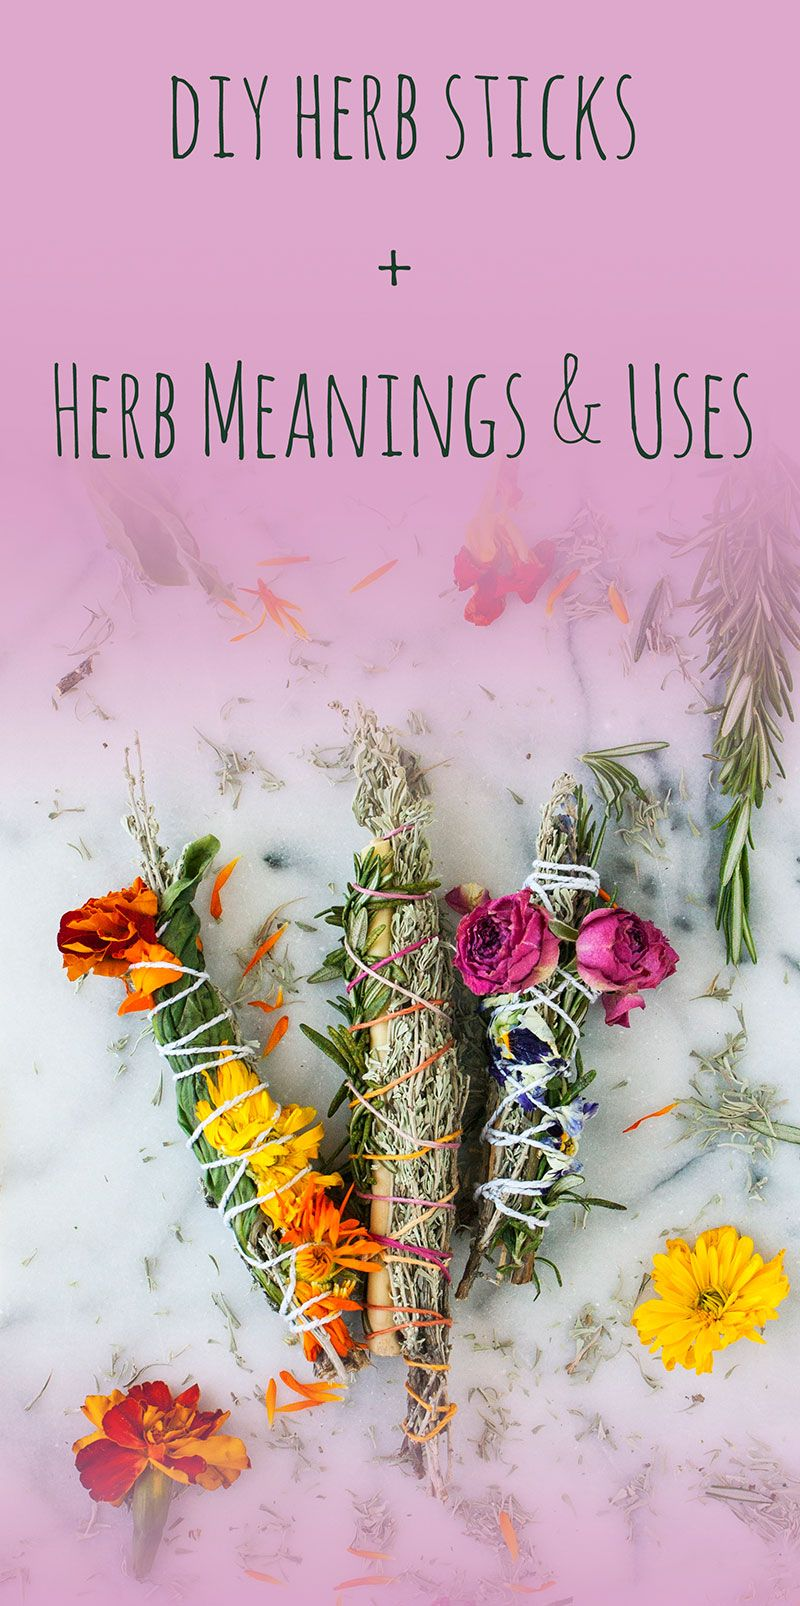 Diy Herb Sticks And Herb Meanings And Uses Herb Meanings Wicca